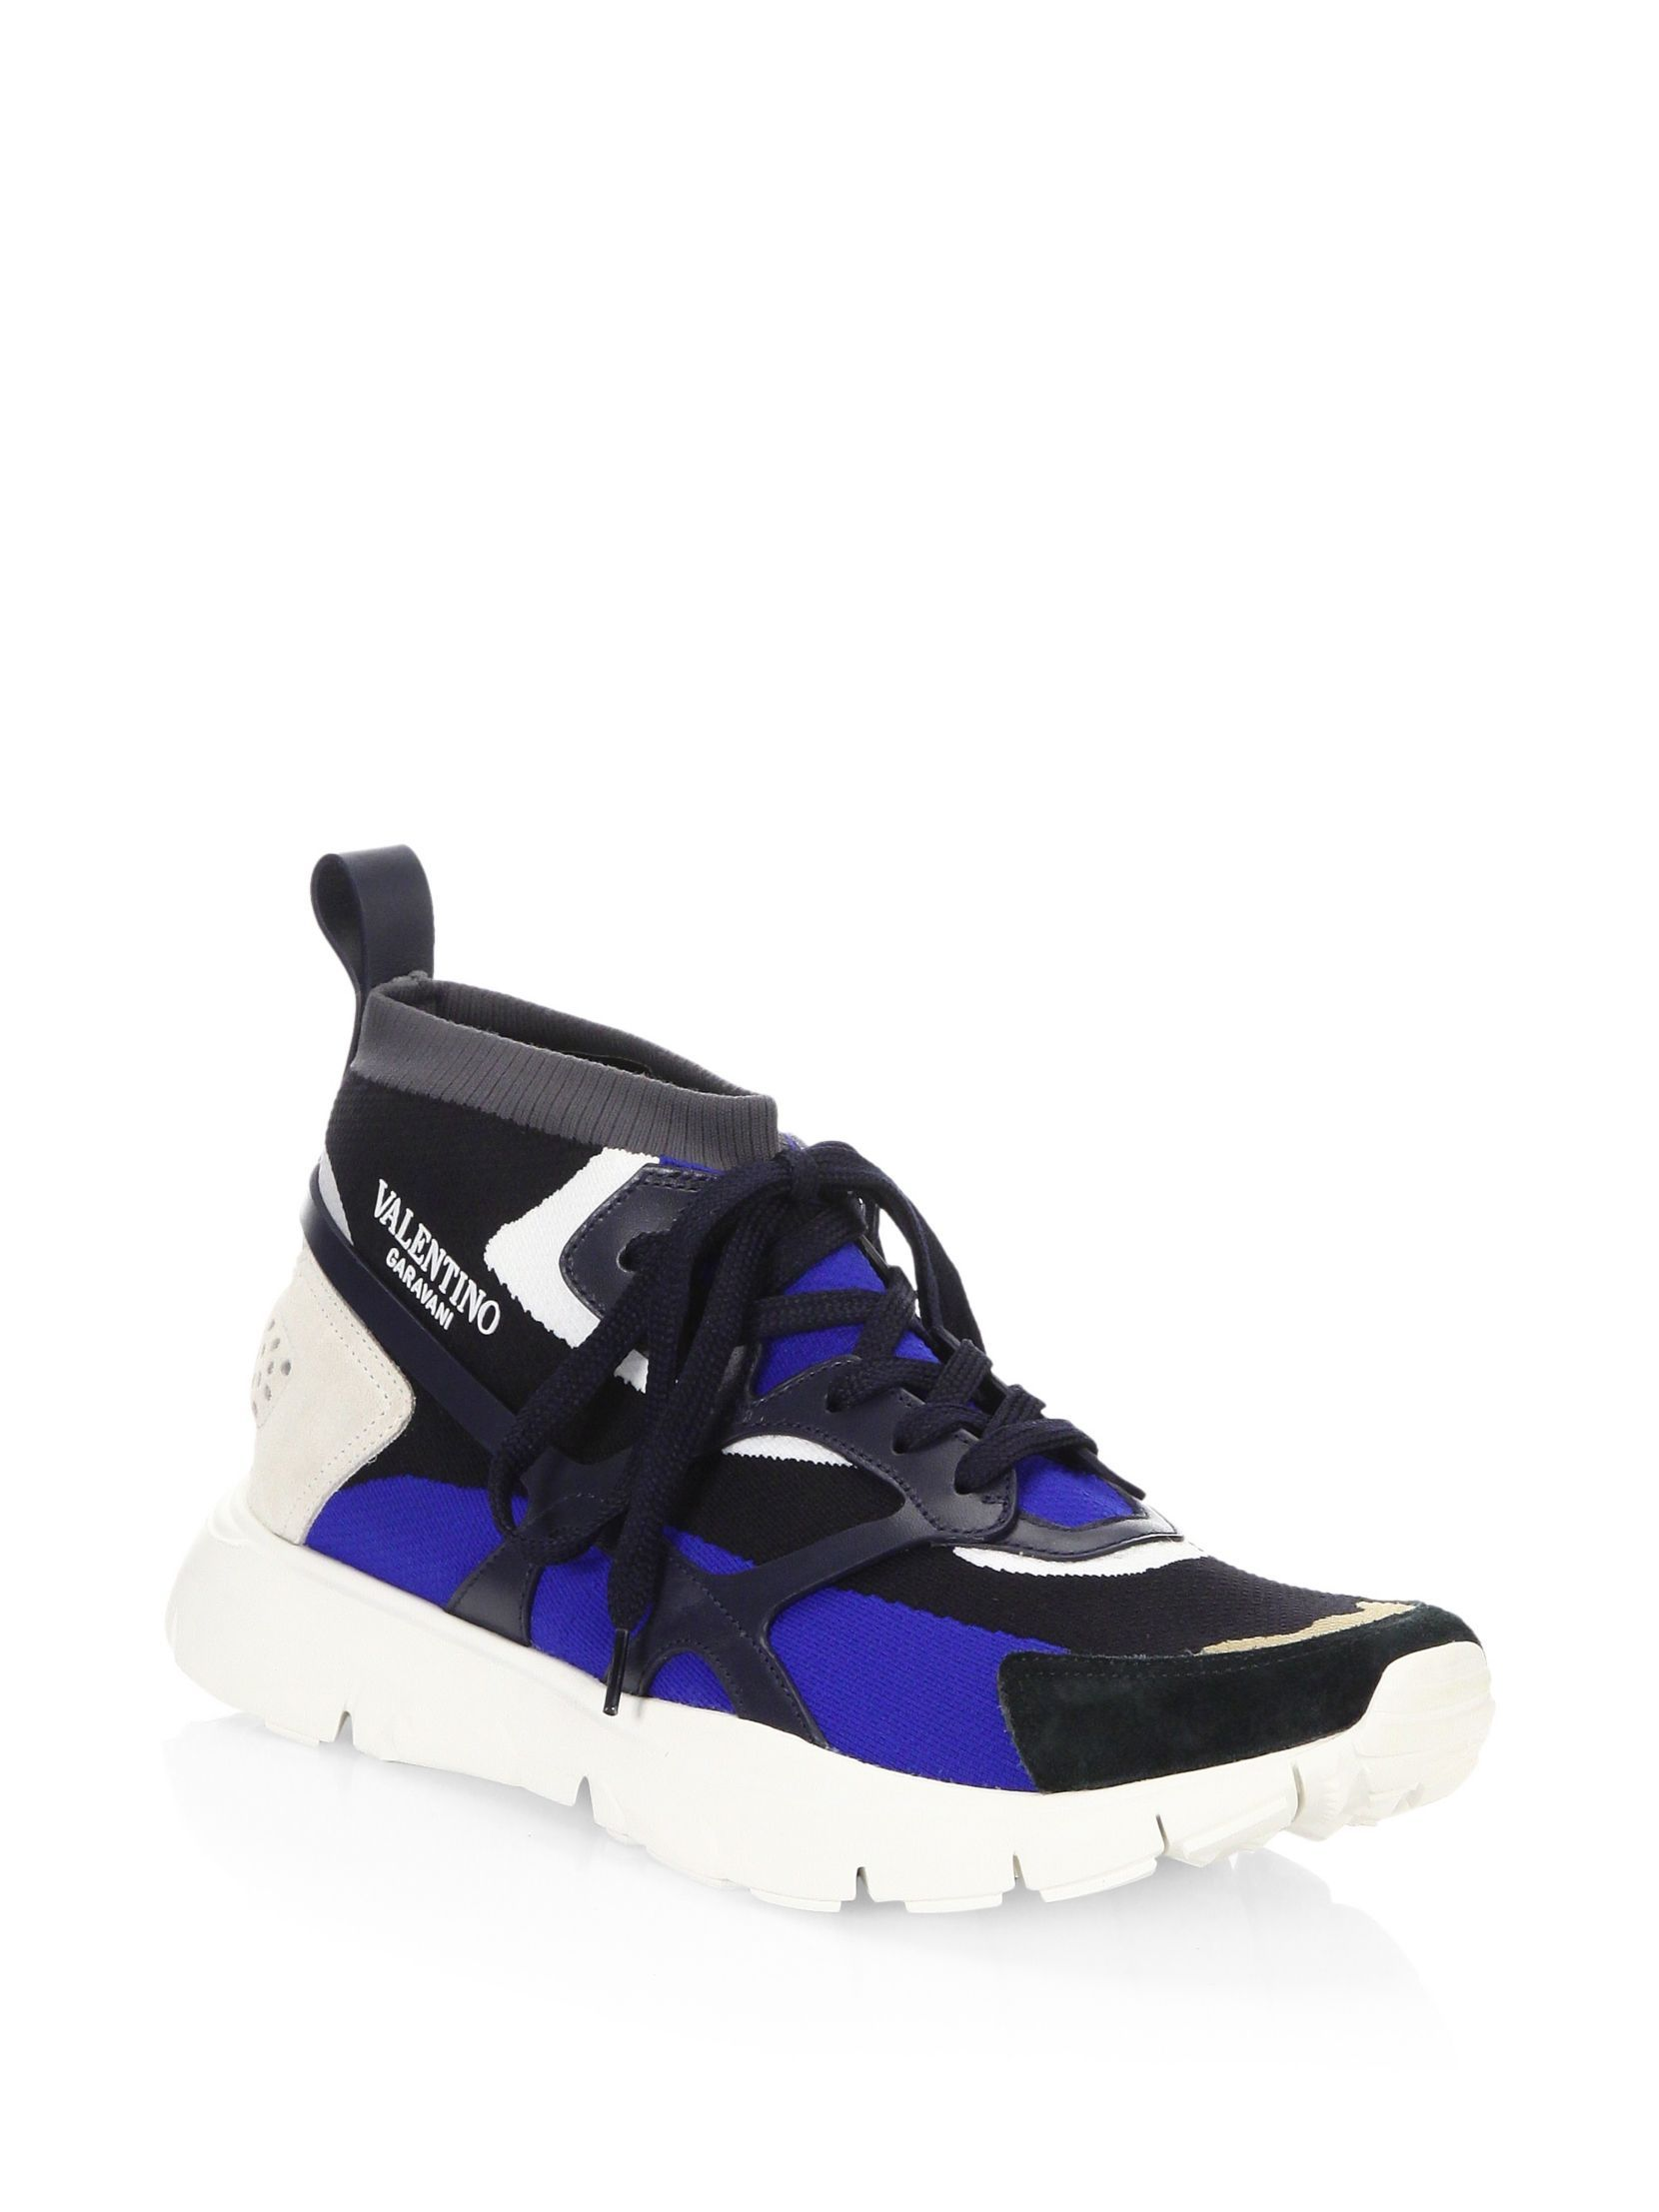 Read more Multicolor Valentino Garavani Sound High-Top Sneakers